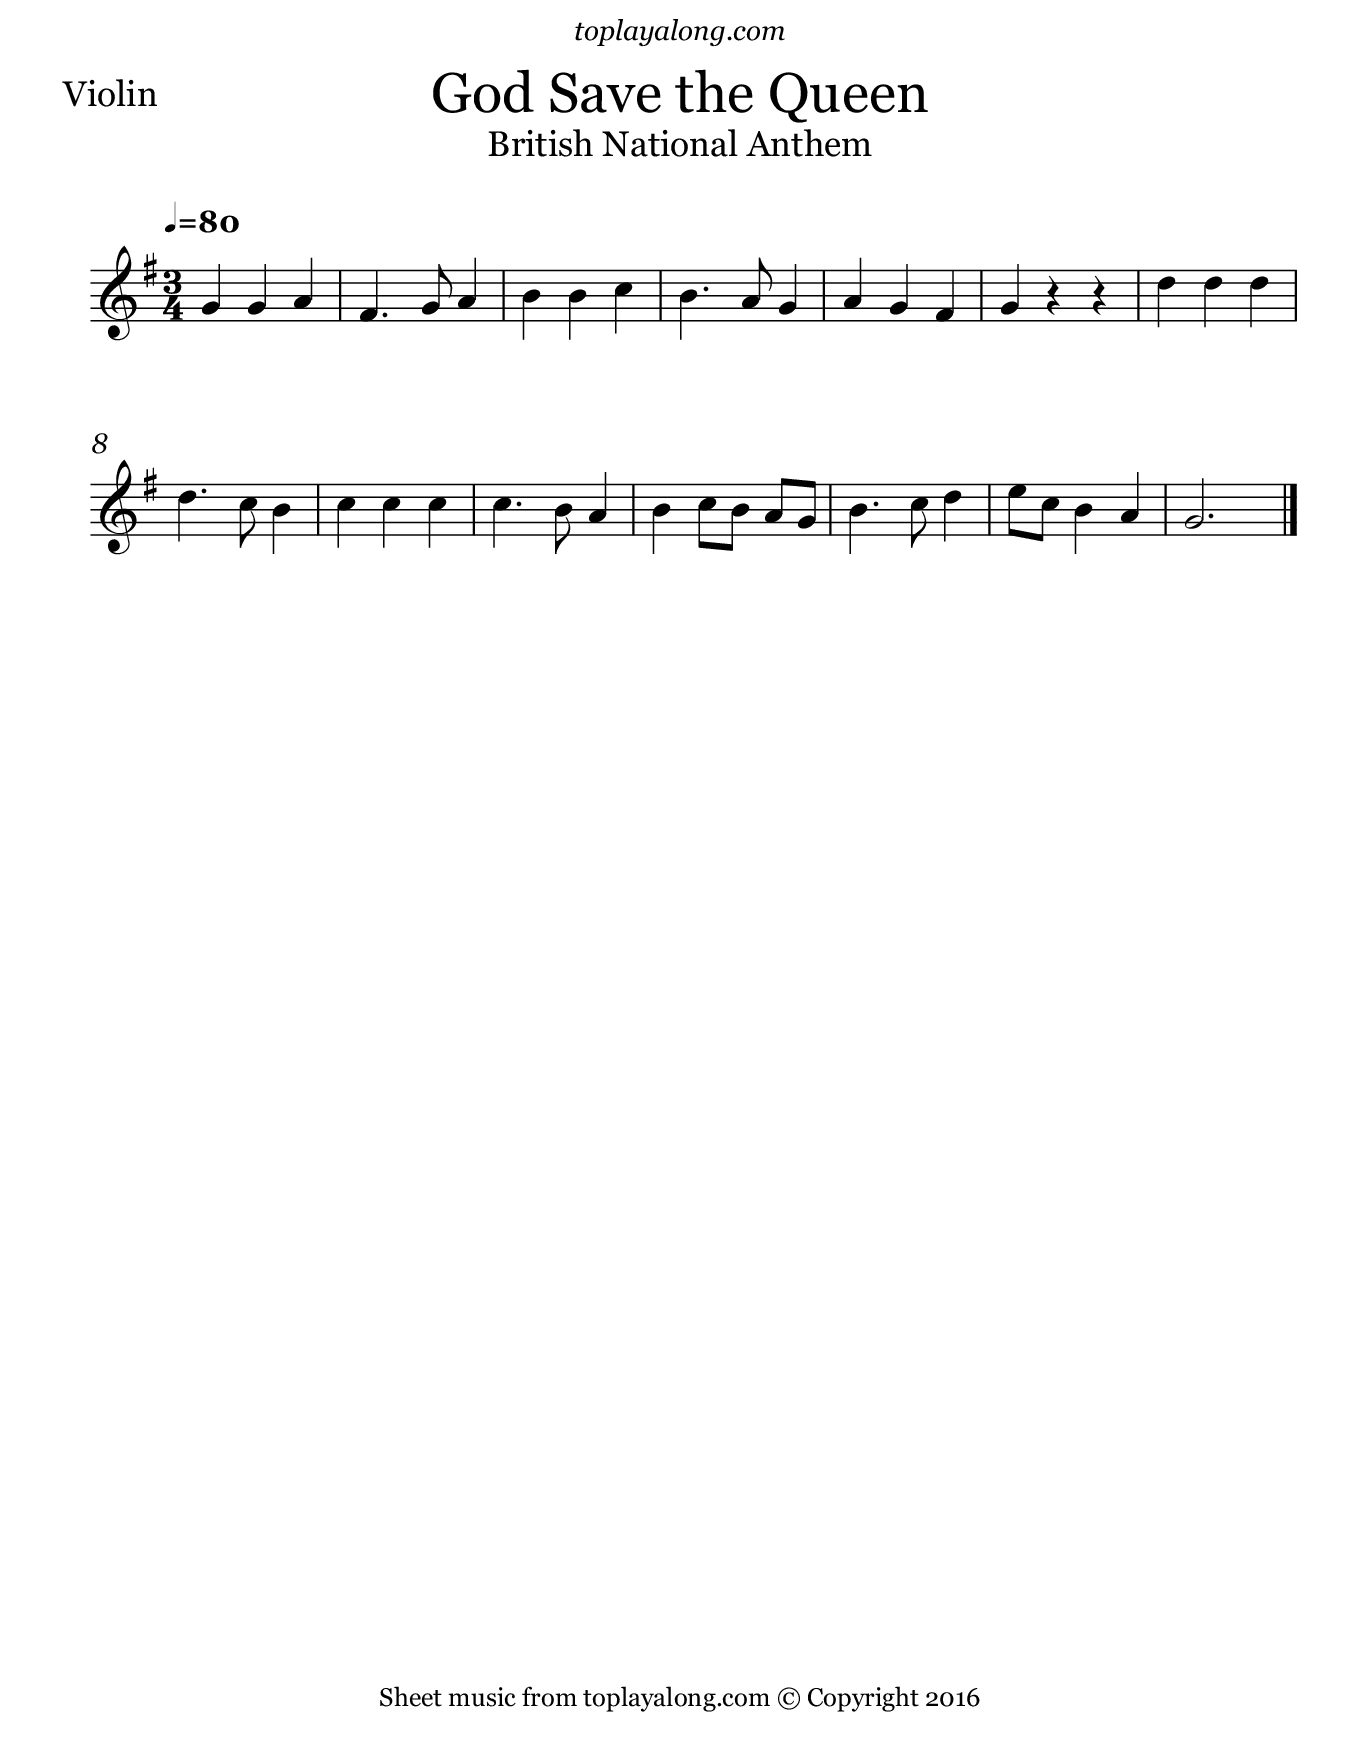 British National Anthem - God Save the Queen. Sheet music for Violin, page 1.